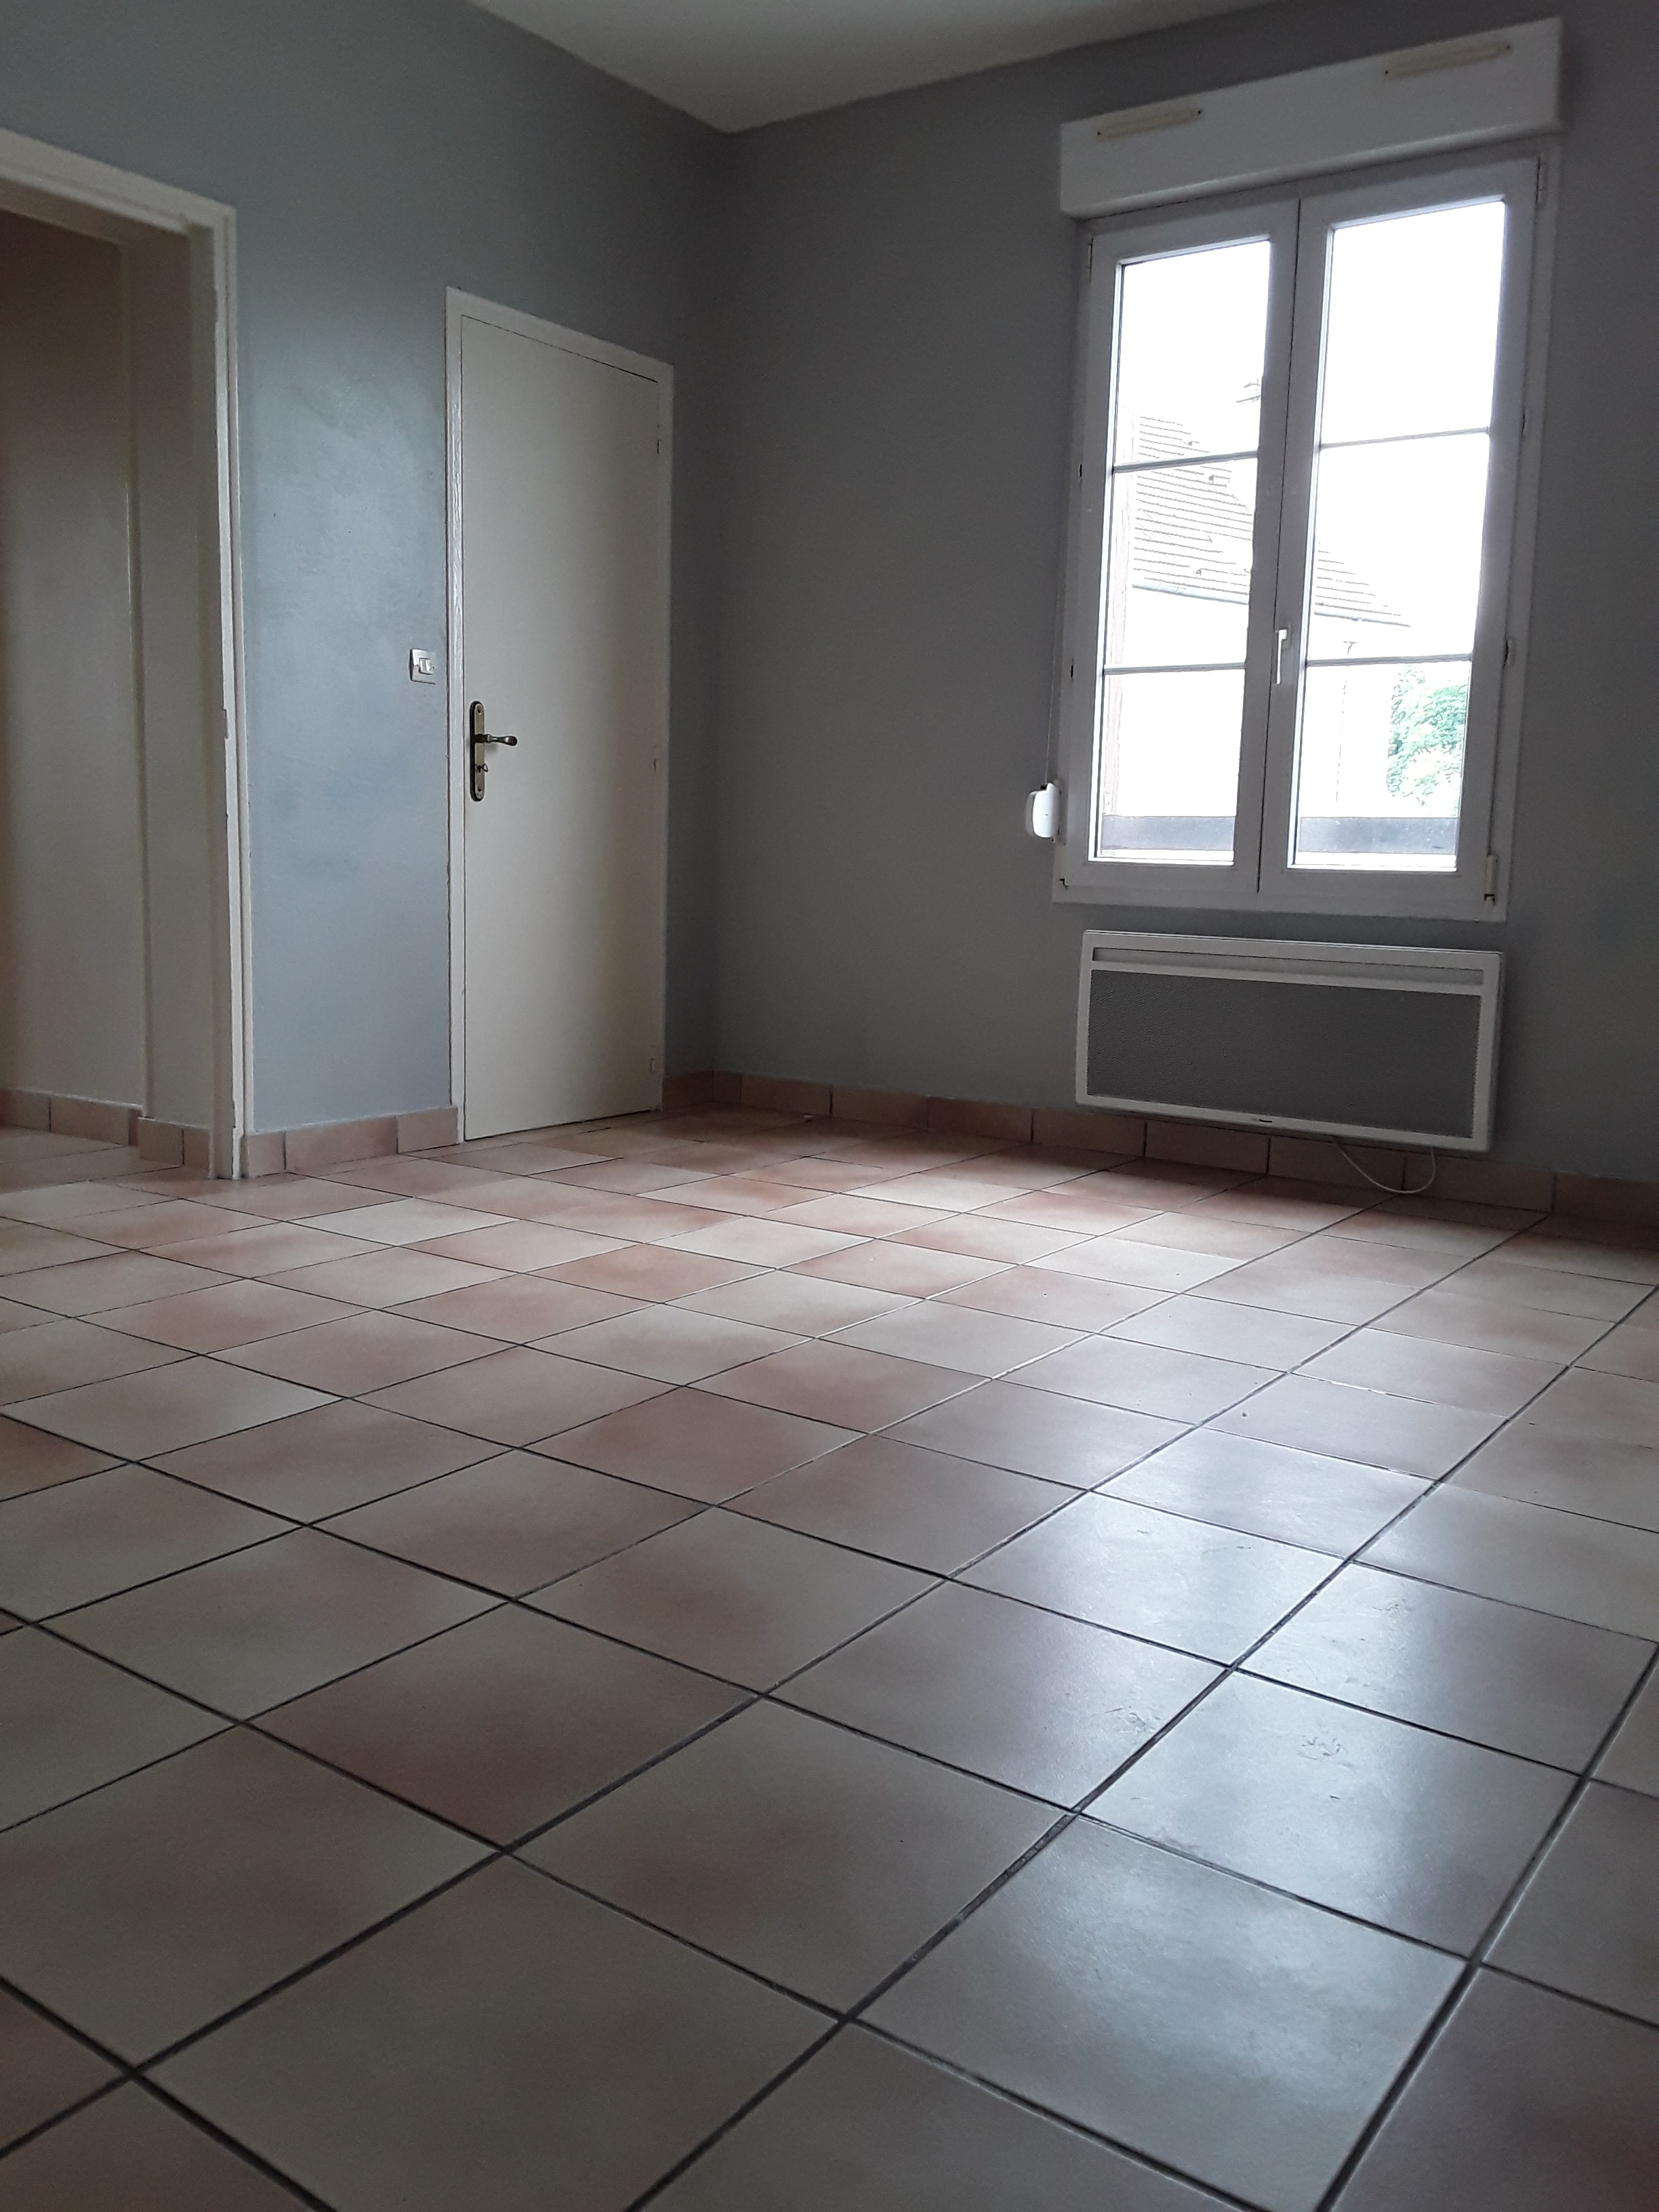 Damonte LOCATION APPARTEMENT T2 CHALONS EN CHAMPAGNE G106